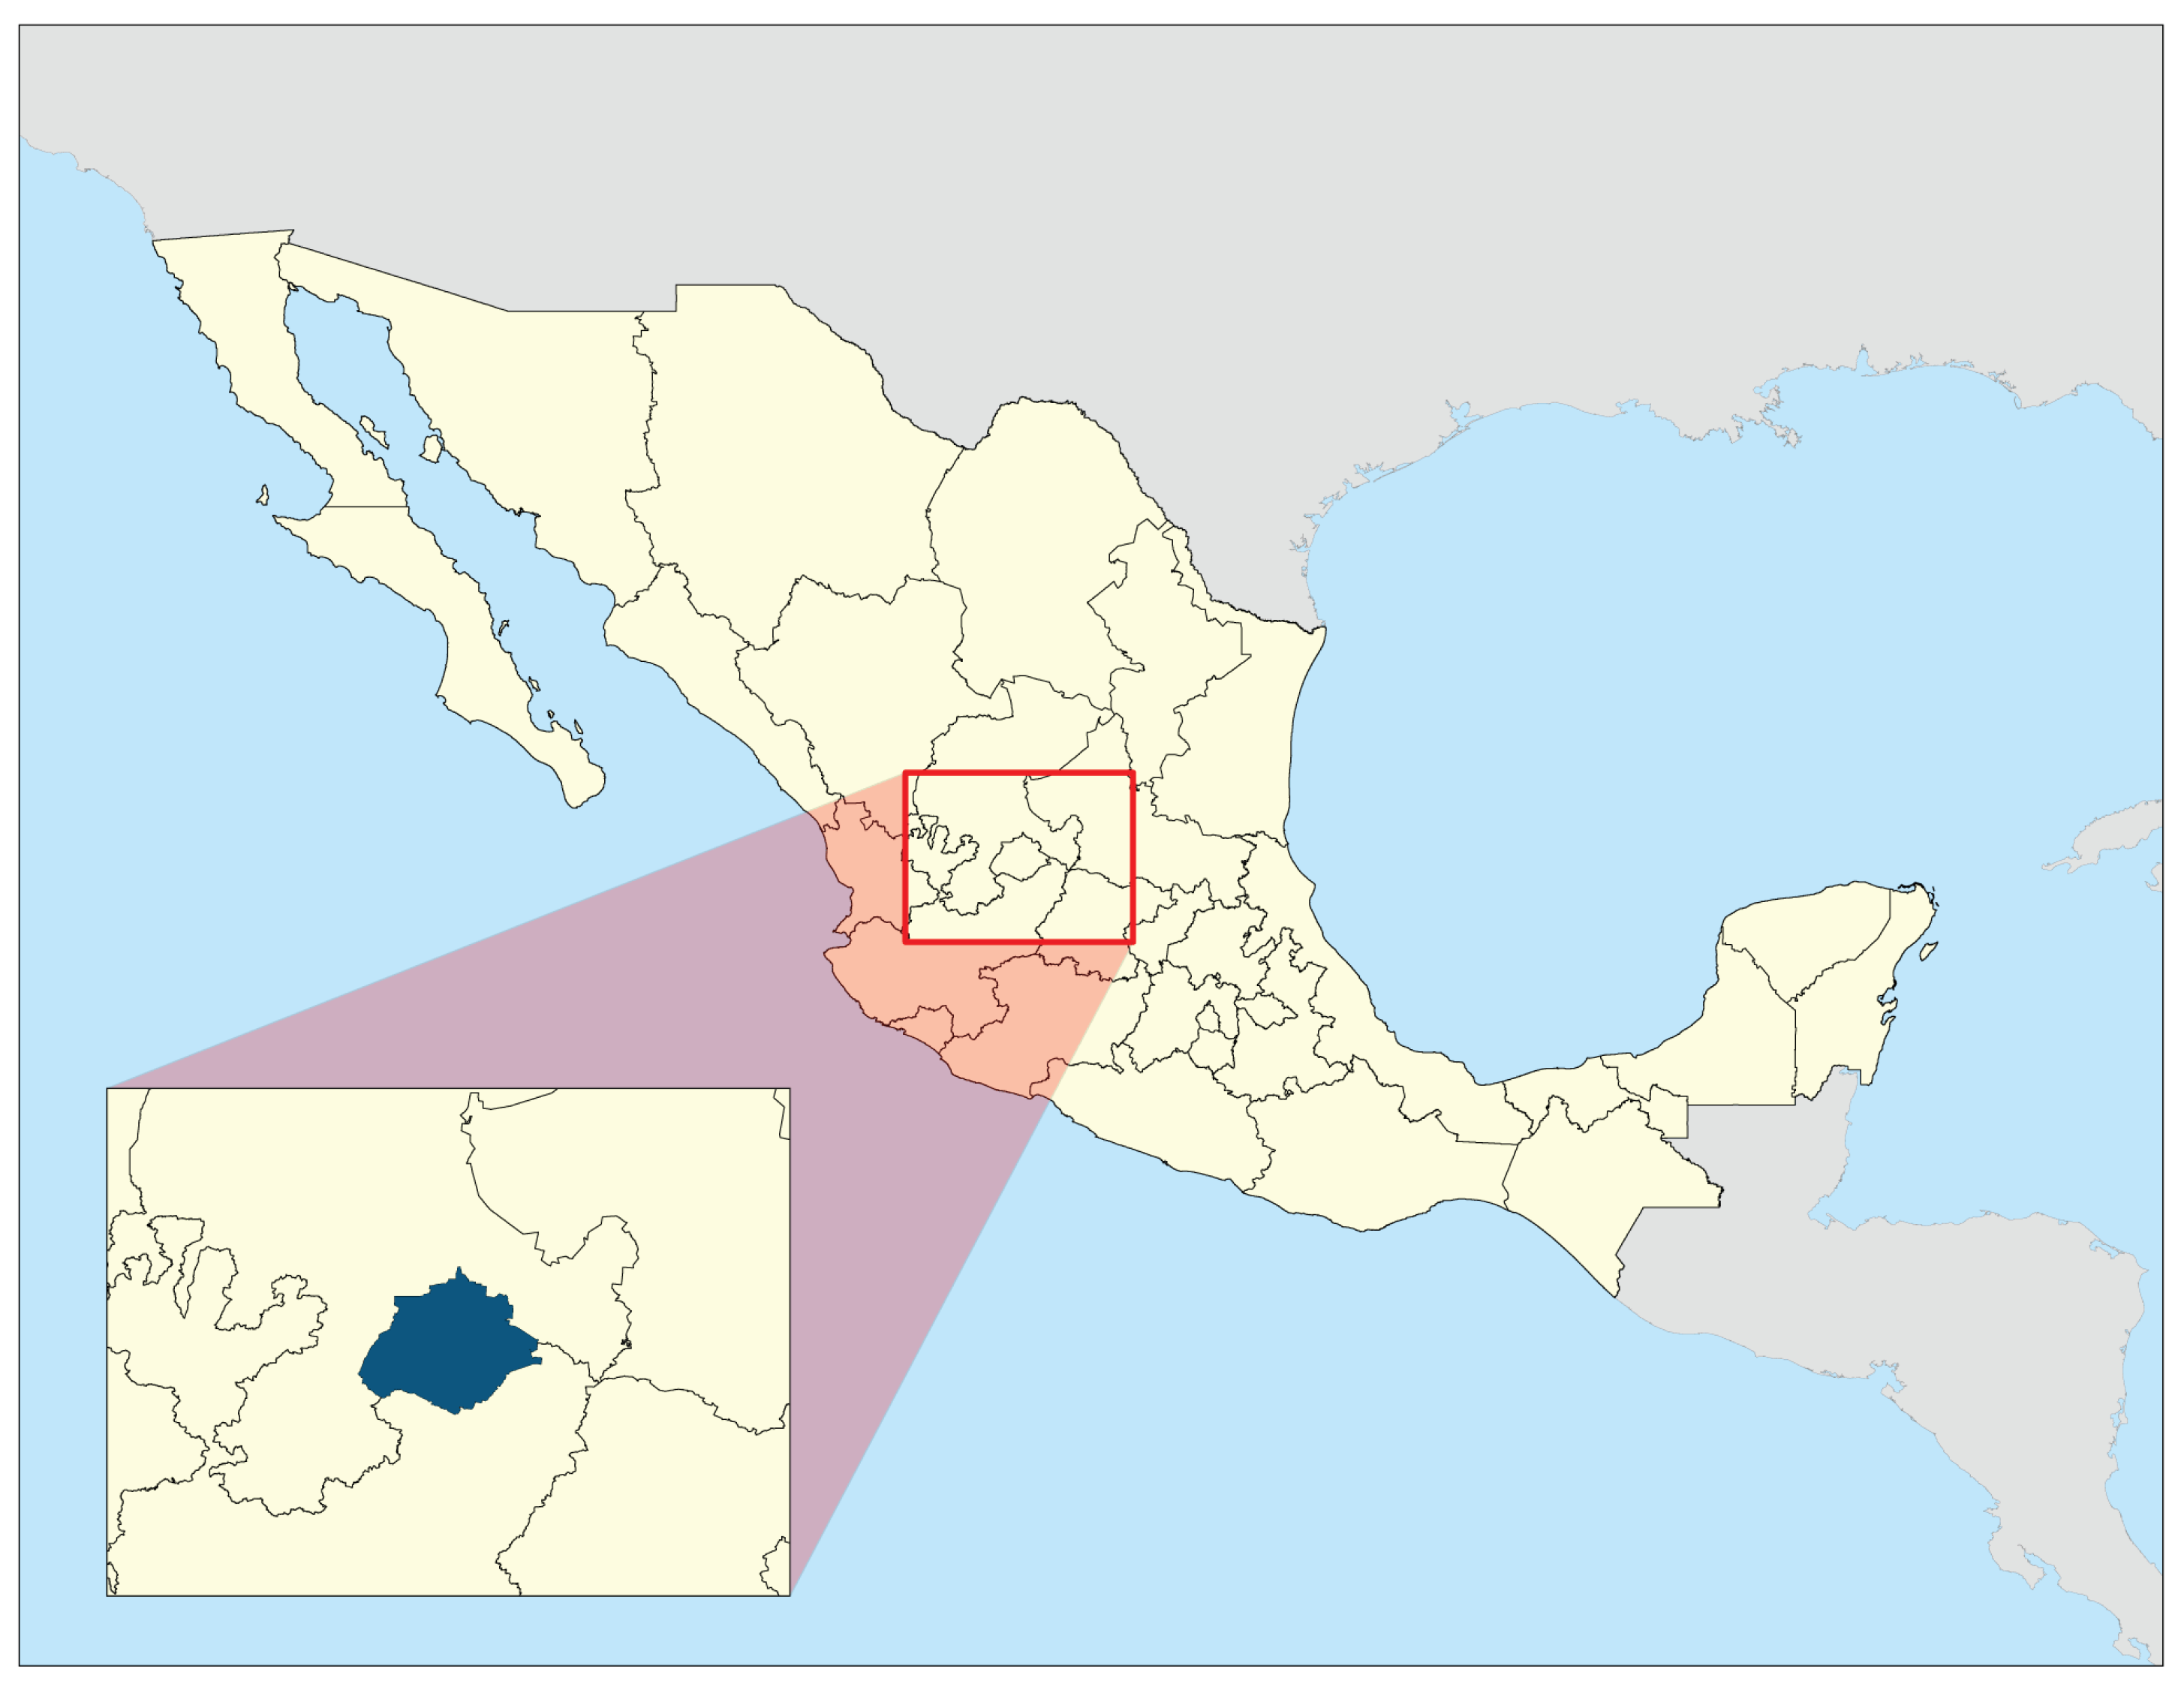 Sustainability Free Full Text Exploring The Use Of A Spatio Temporal City Dashboard To Study Criminal Incidence A Case Study For The Mexican State Of Aguascalientes